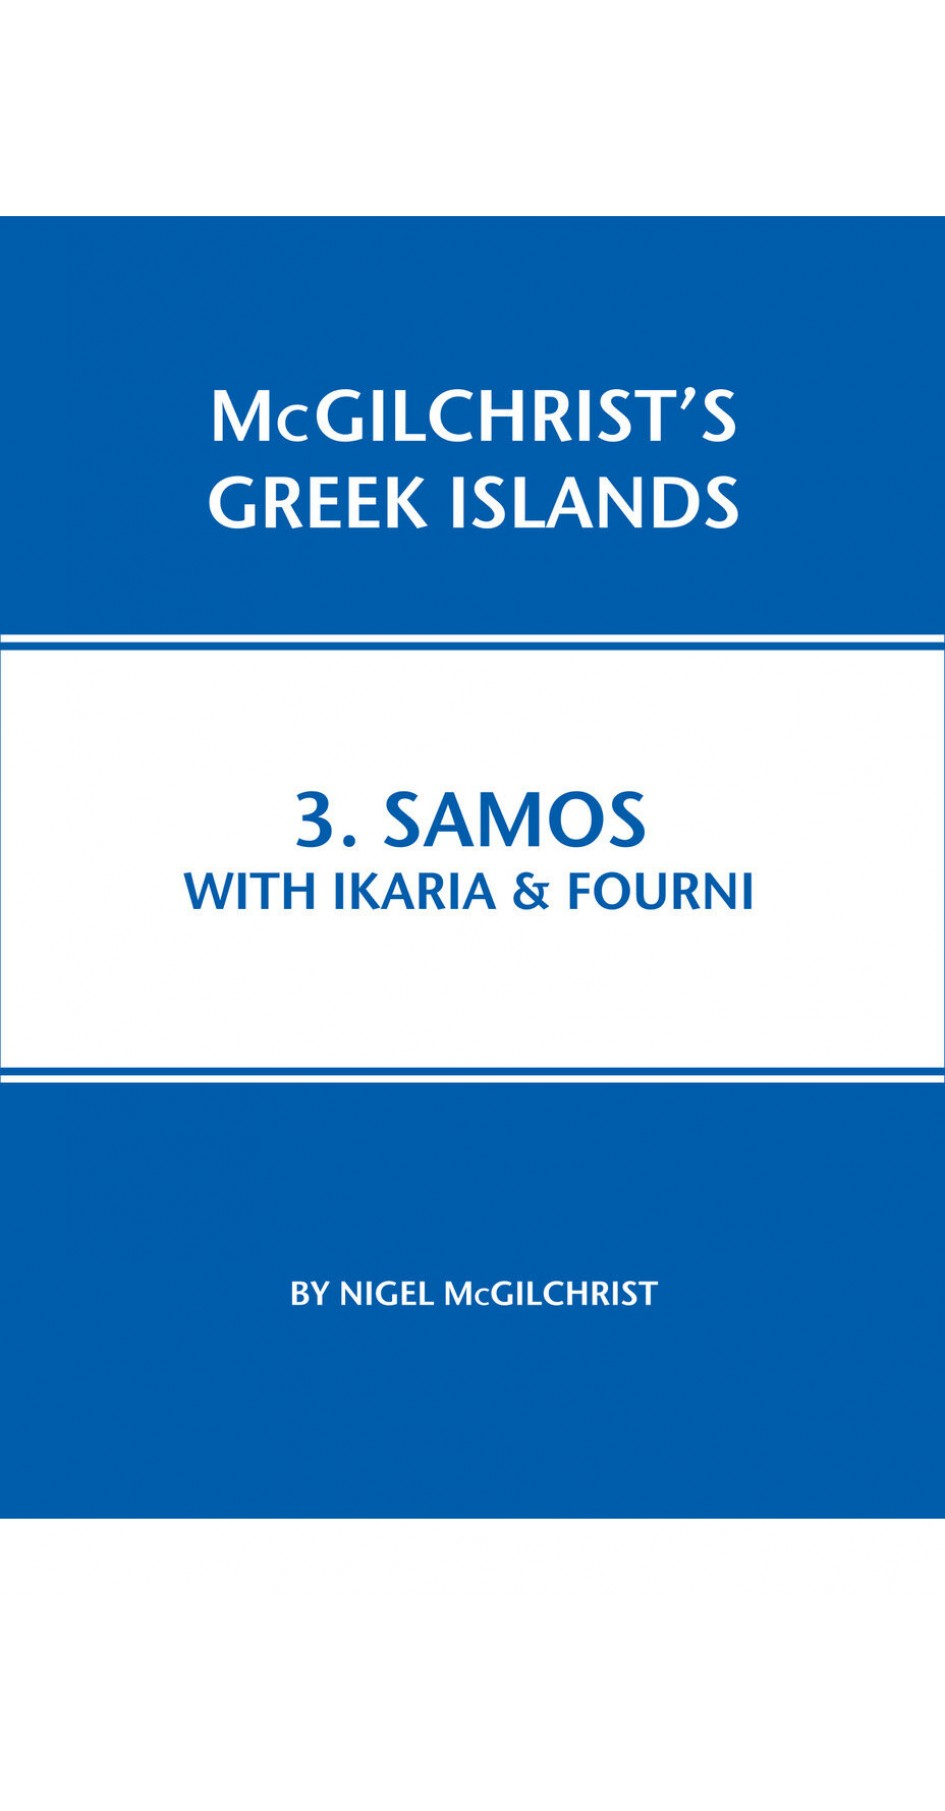 03. Samos with Ikaria & Fourni - McGilchrist's Greek Islands